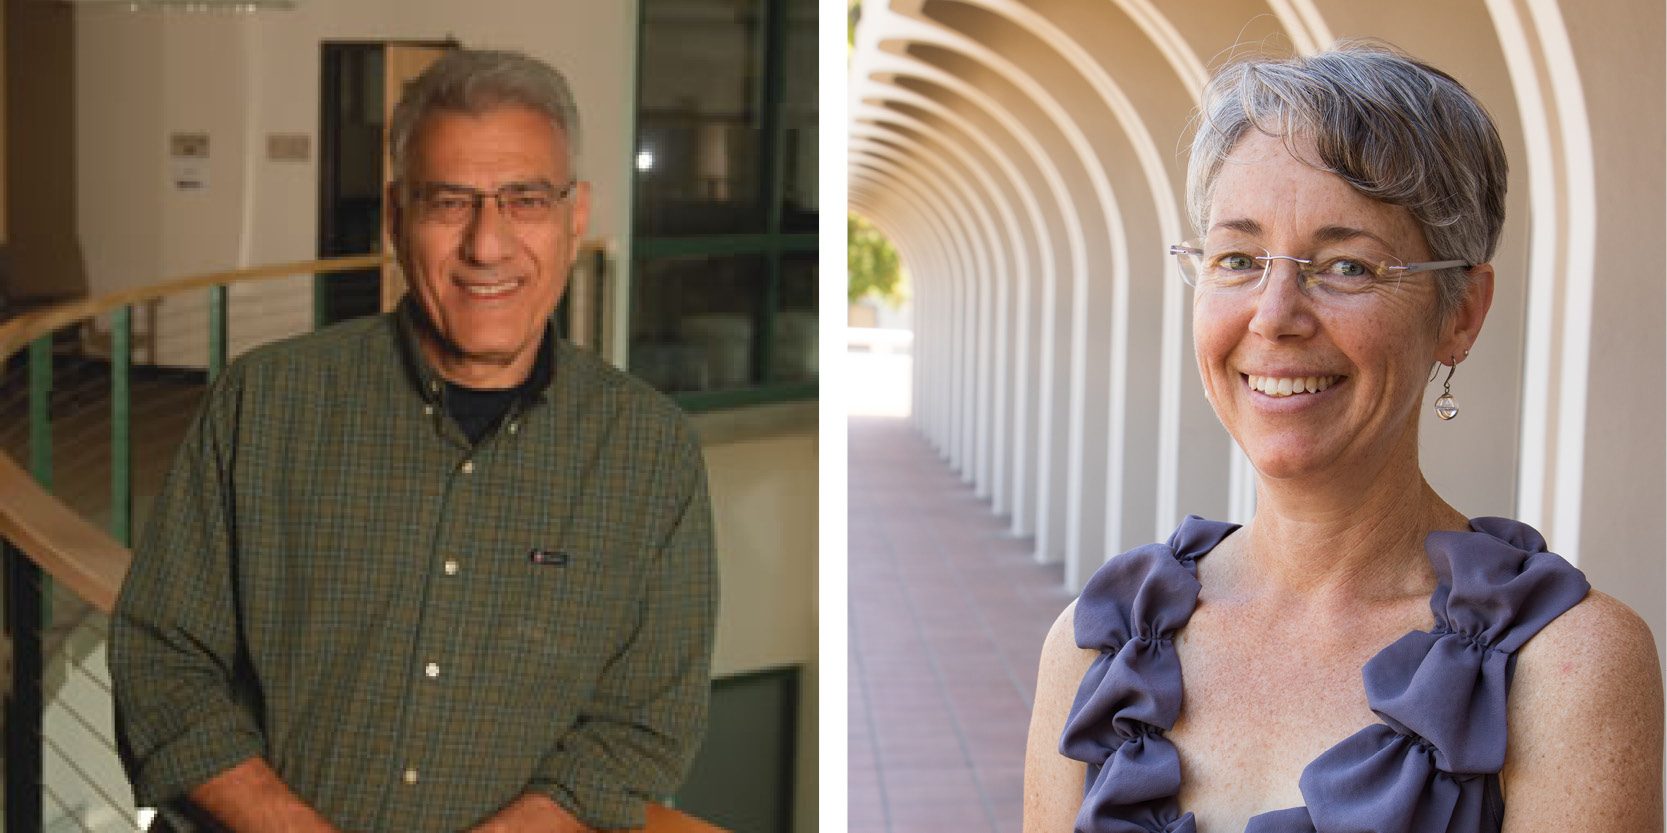 Professors Steve Hanessian and Aimee Edinger found company to combat cancer